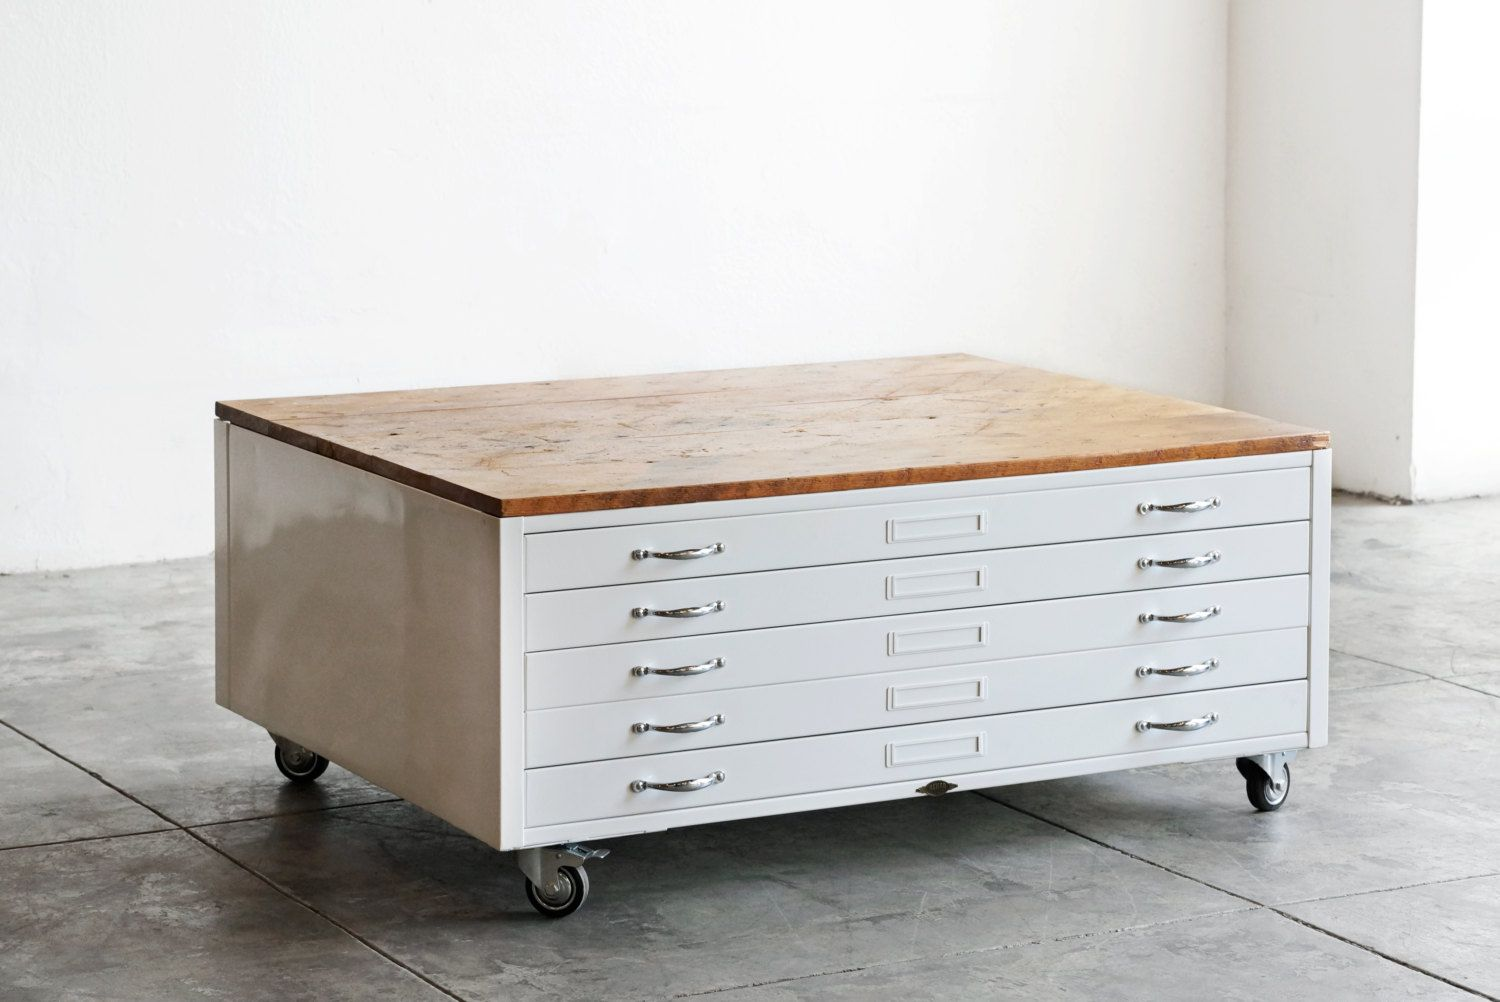 Vintage Flat File Coffee Table In High Gloss White With Reclaimed Wood Special Order 1800 00 Usd By Rehabvintagela